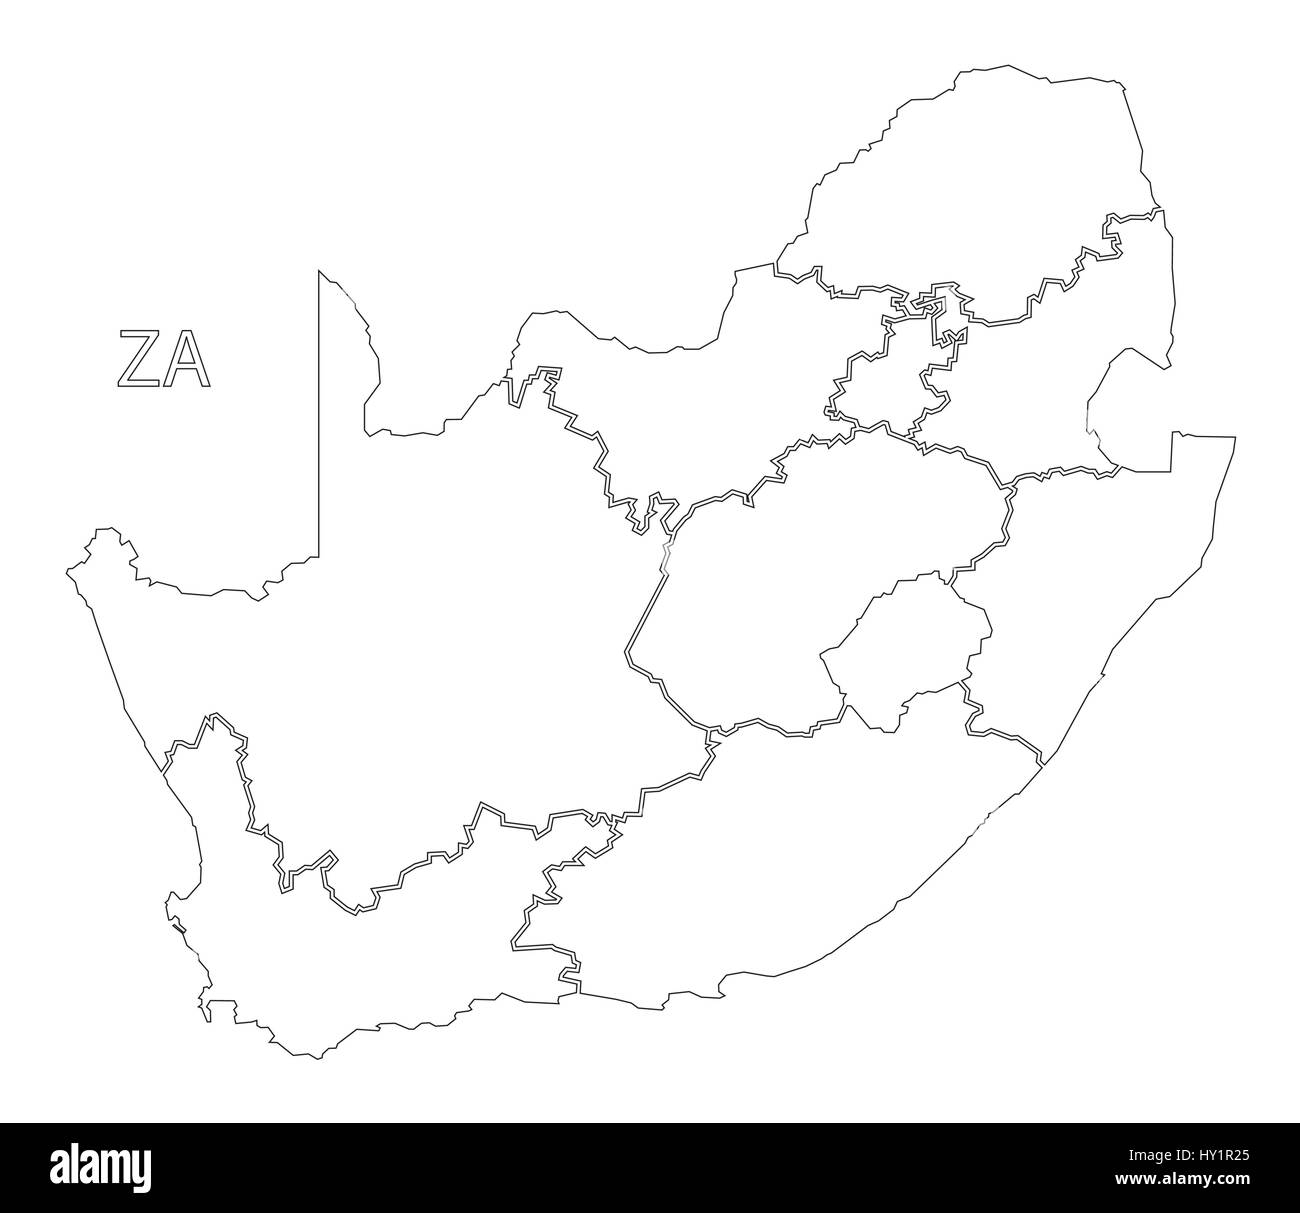 South Africa outline silhouette map illustration with provinces